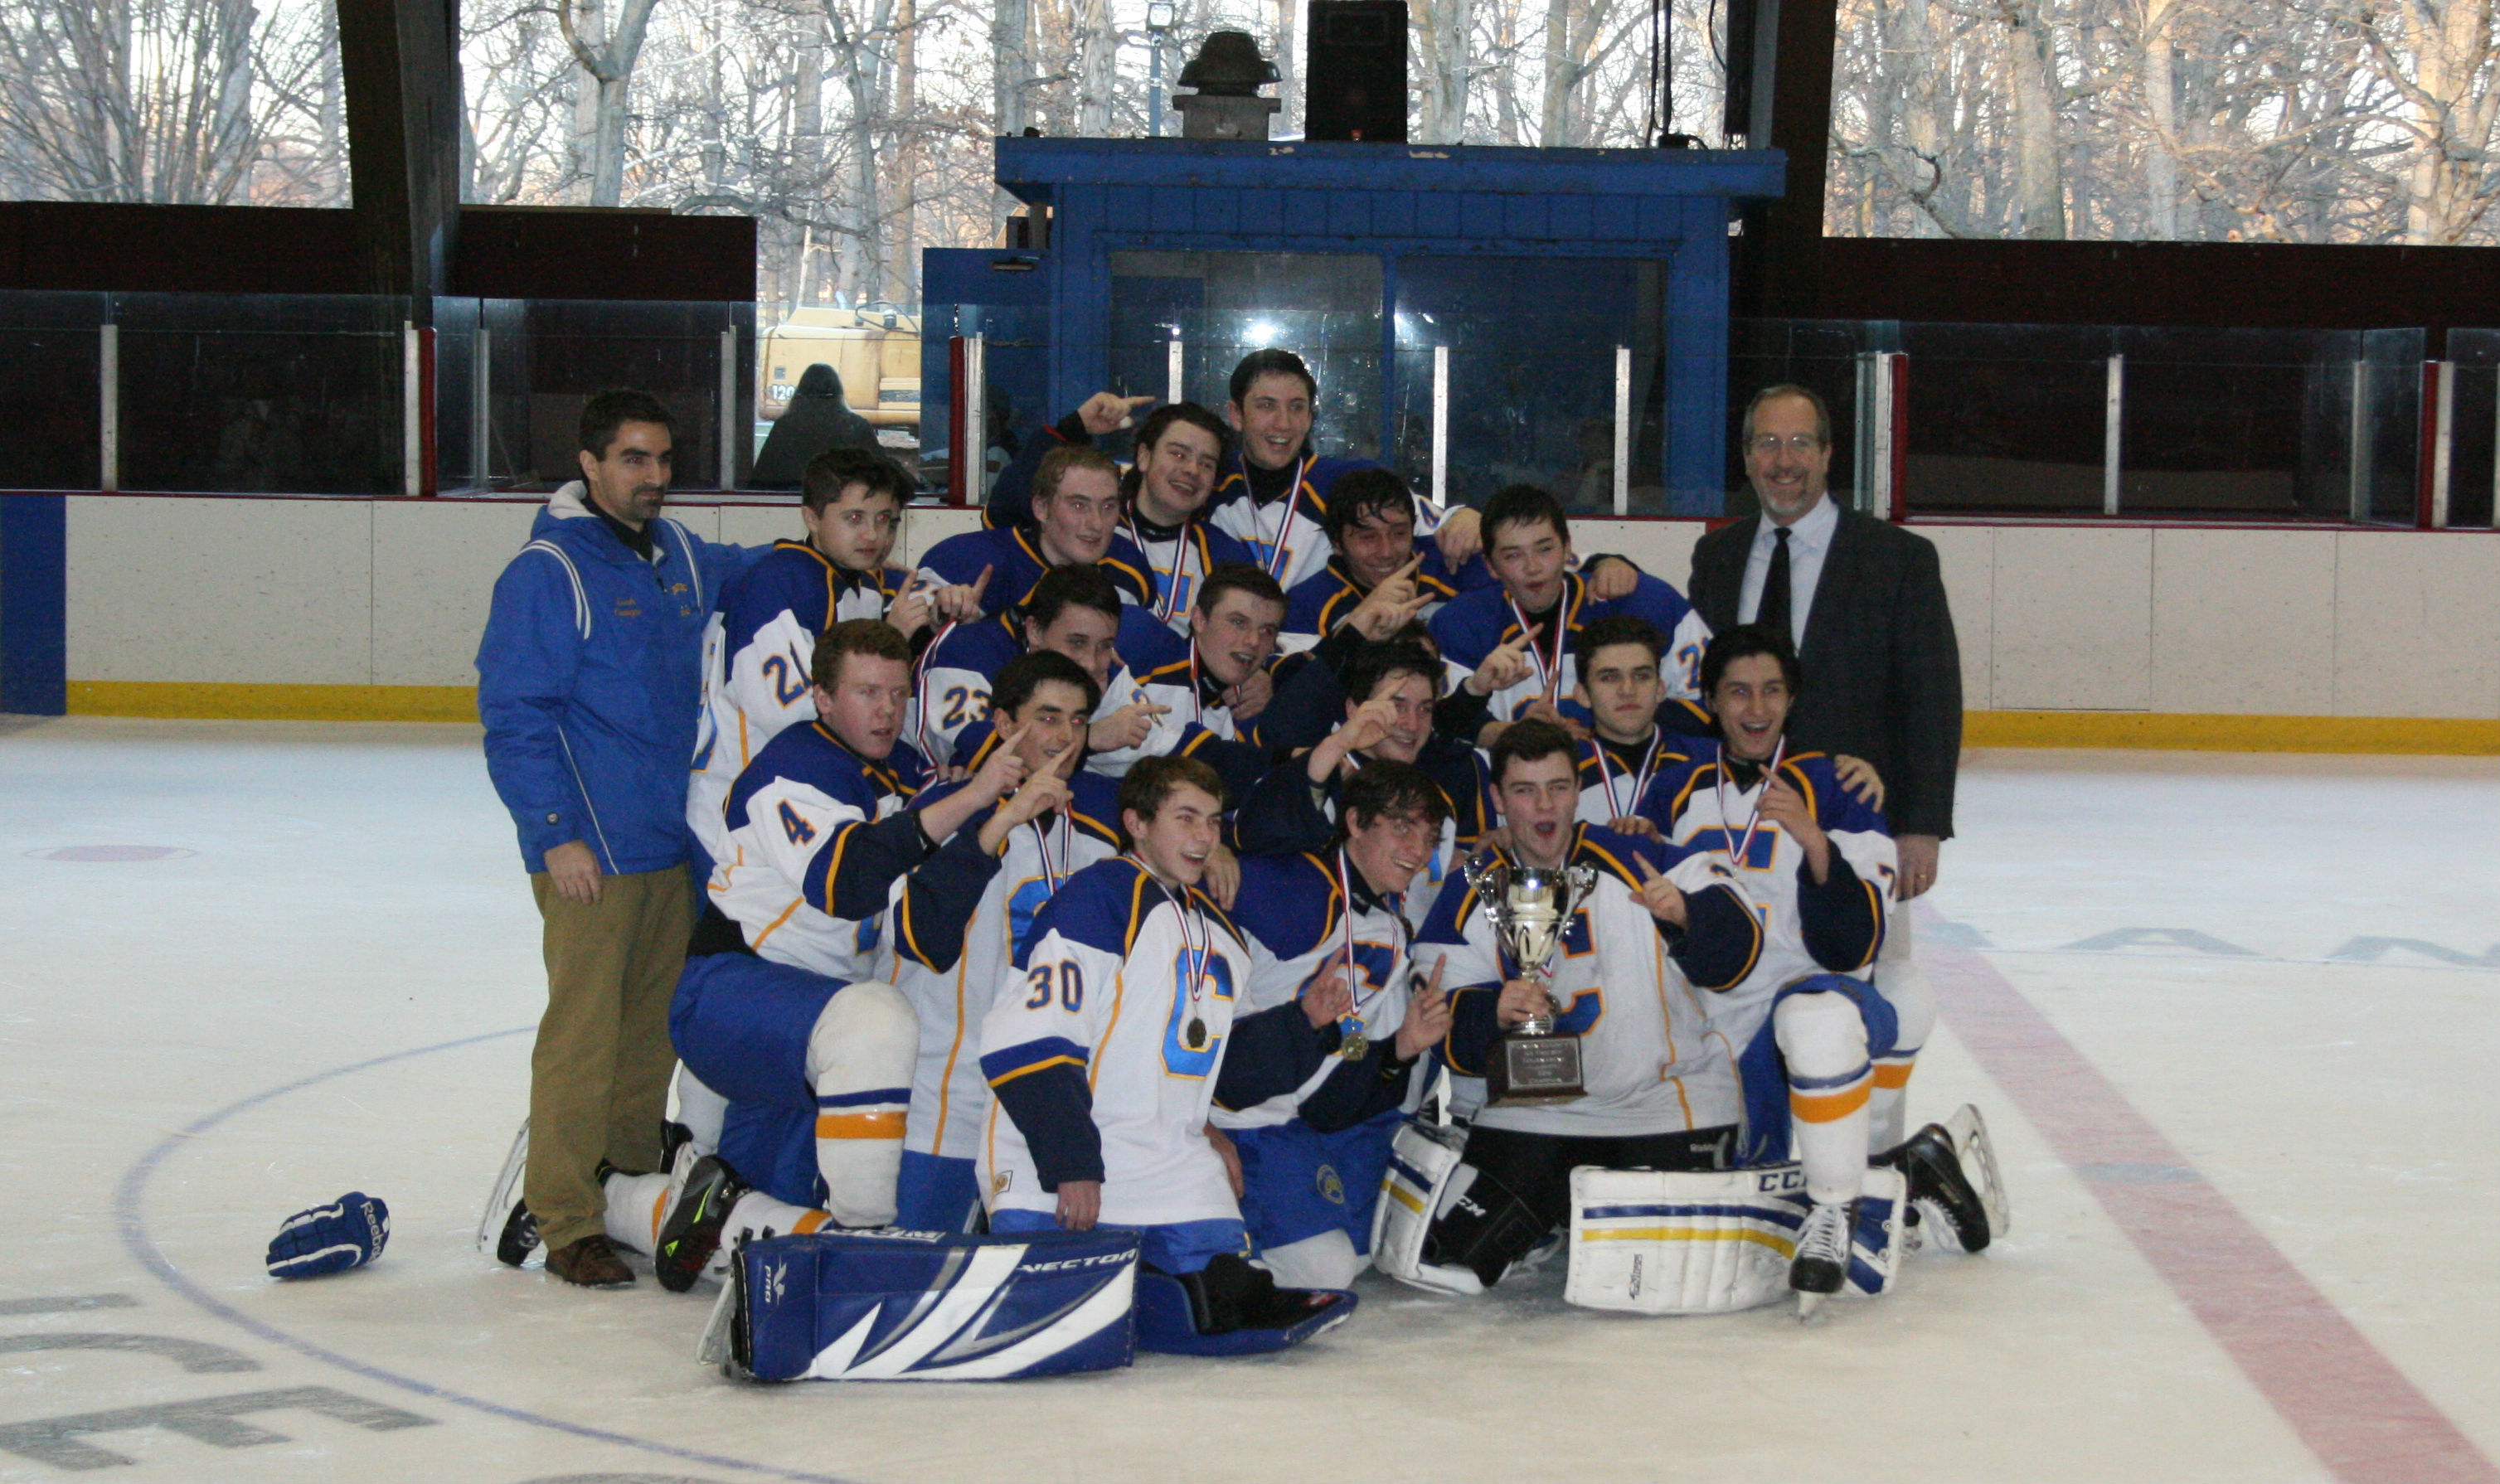 New jersey union county cranford - Cranford Hockey Captures First Union County Cup